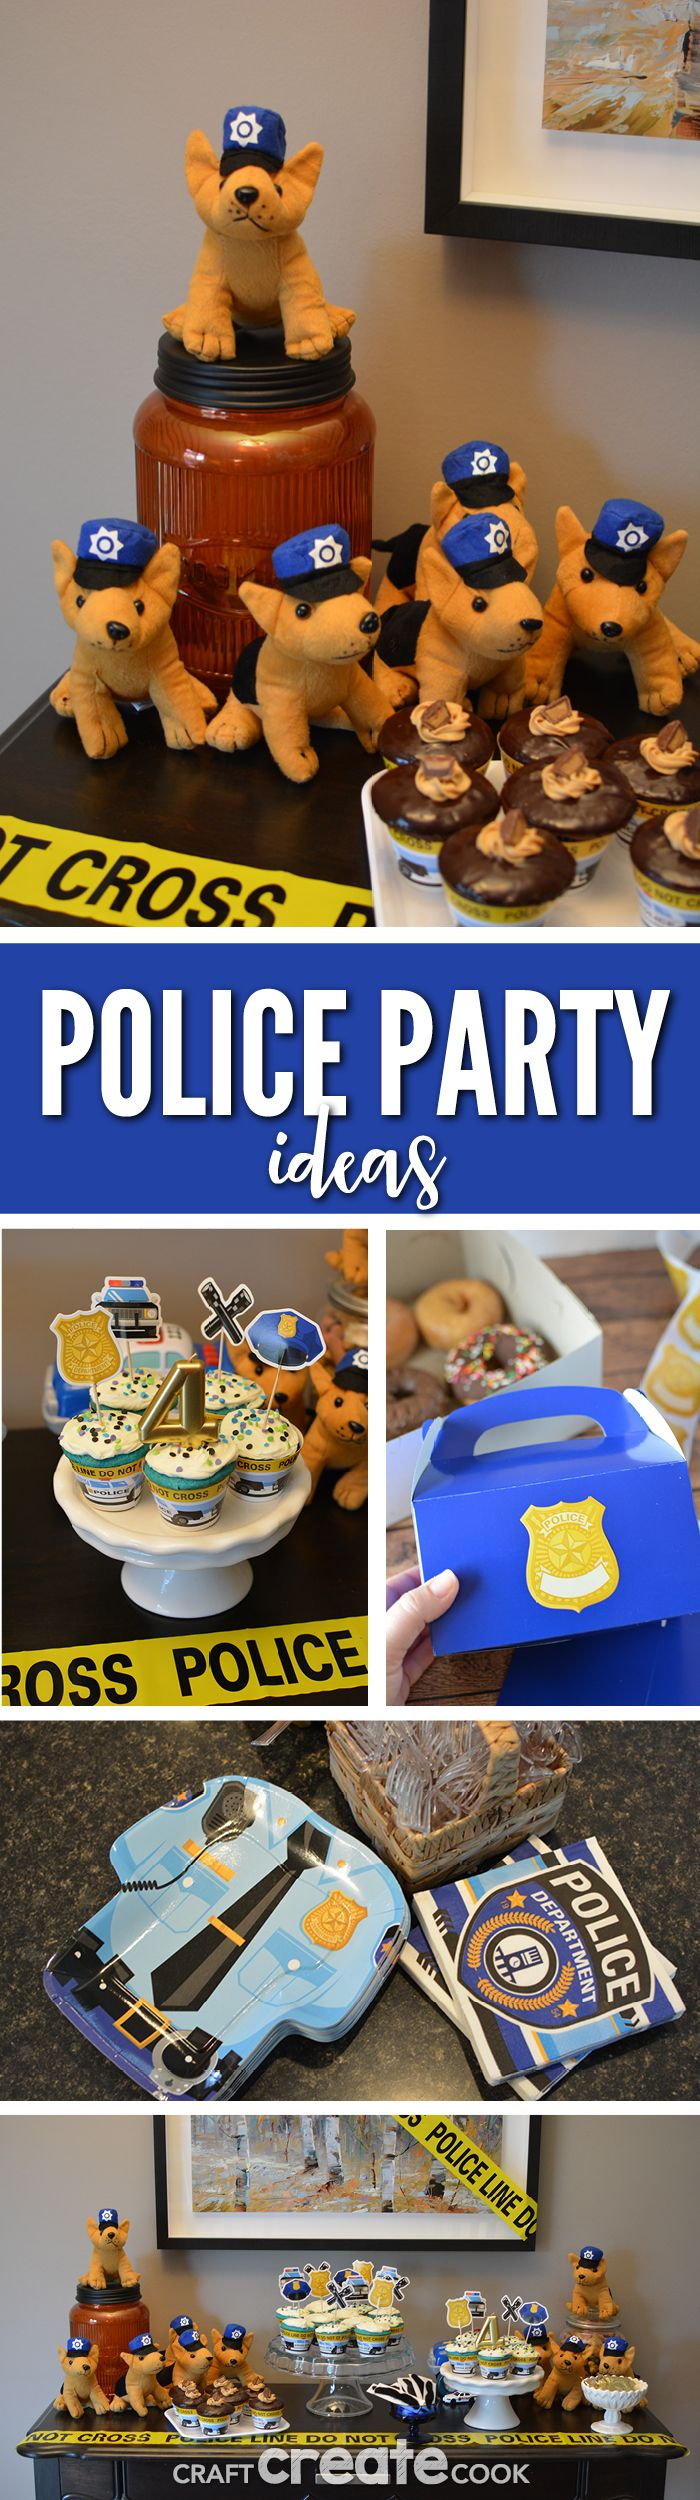 Looking for police birthday party ideas? We've got an easy and fun place for all your party ideas! #ad #orientaltrading     via @CraftCreatCook1